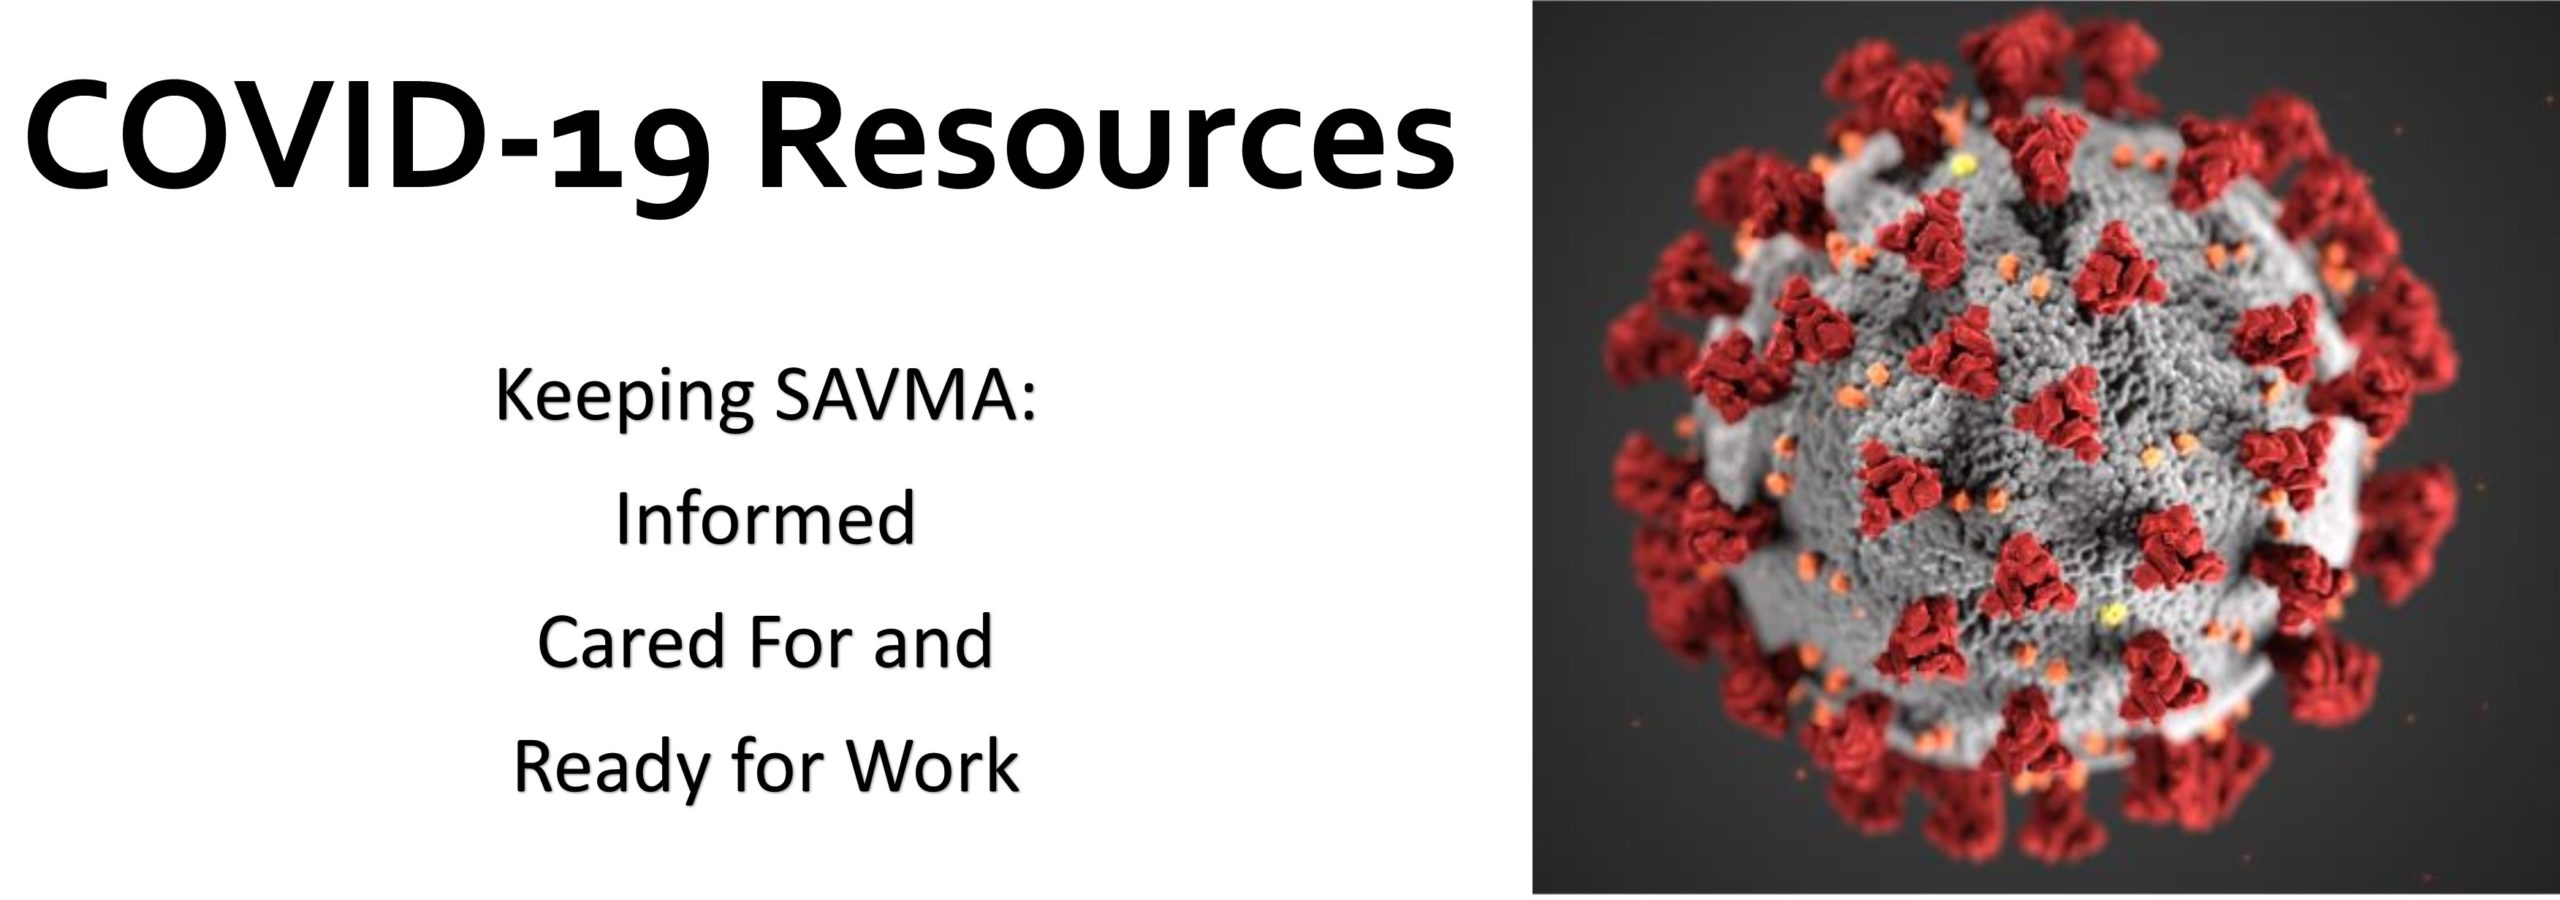 Header for COVID-19 Resources Page, featuring photo of coronavirus